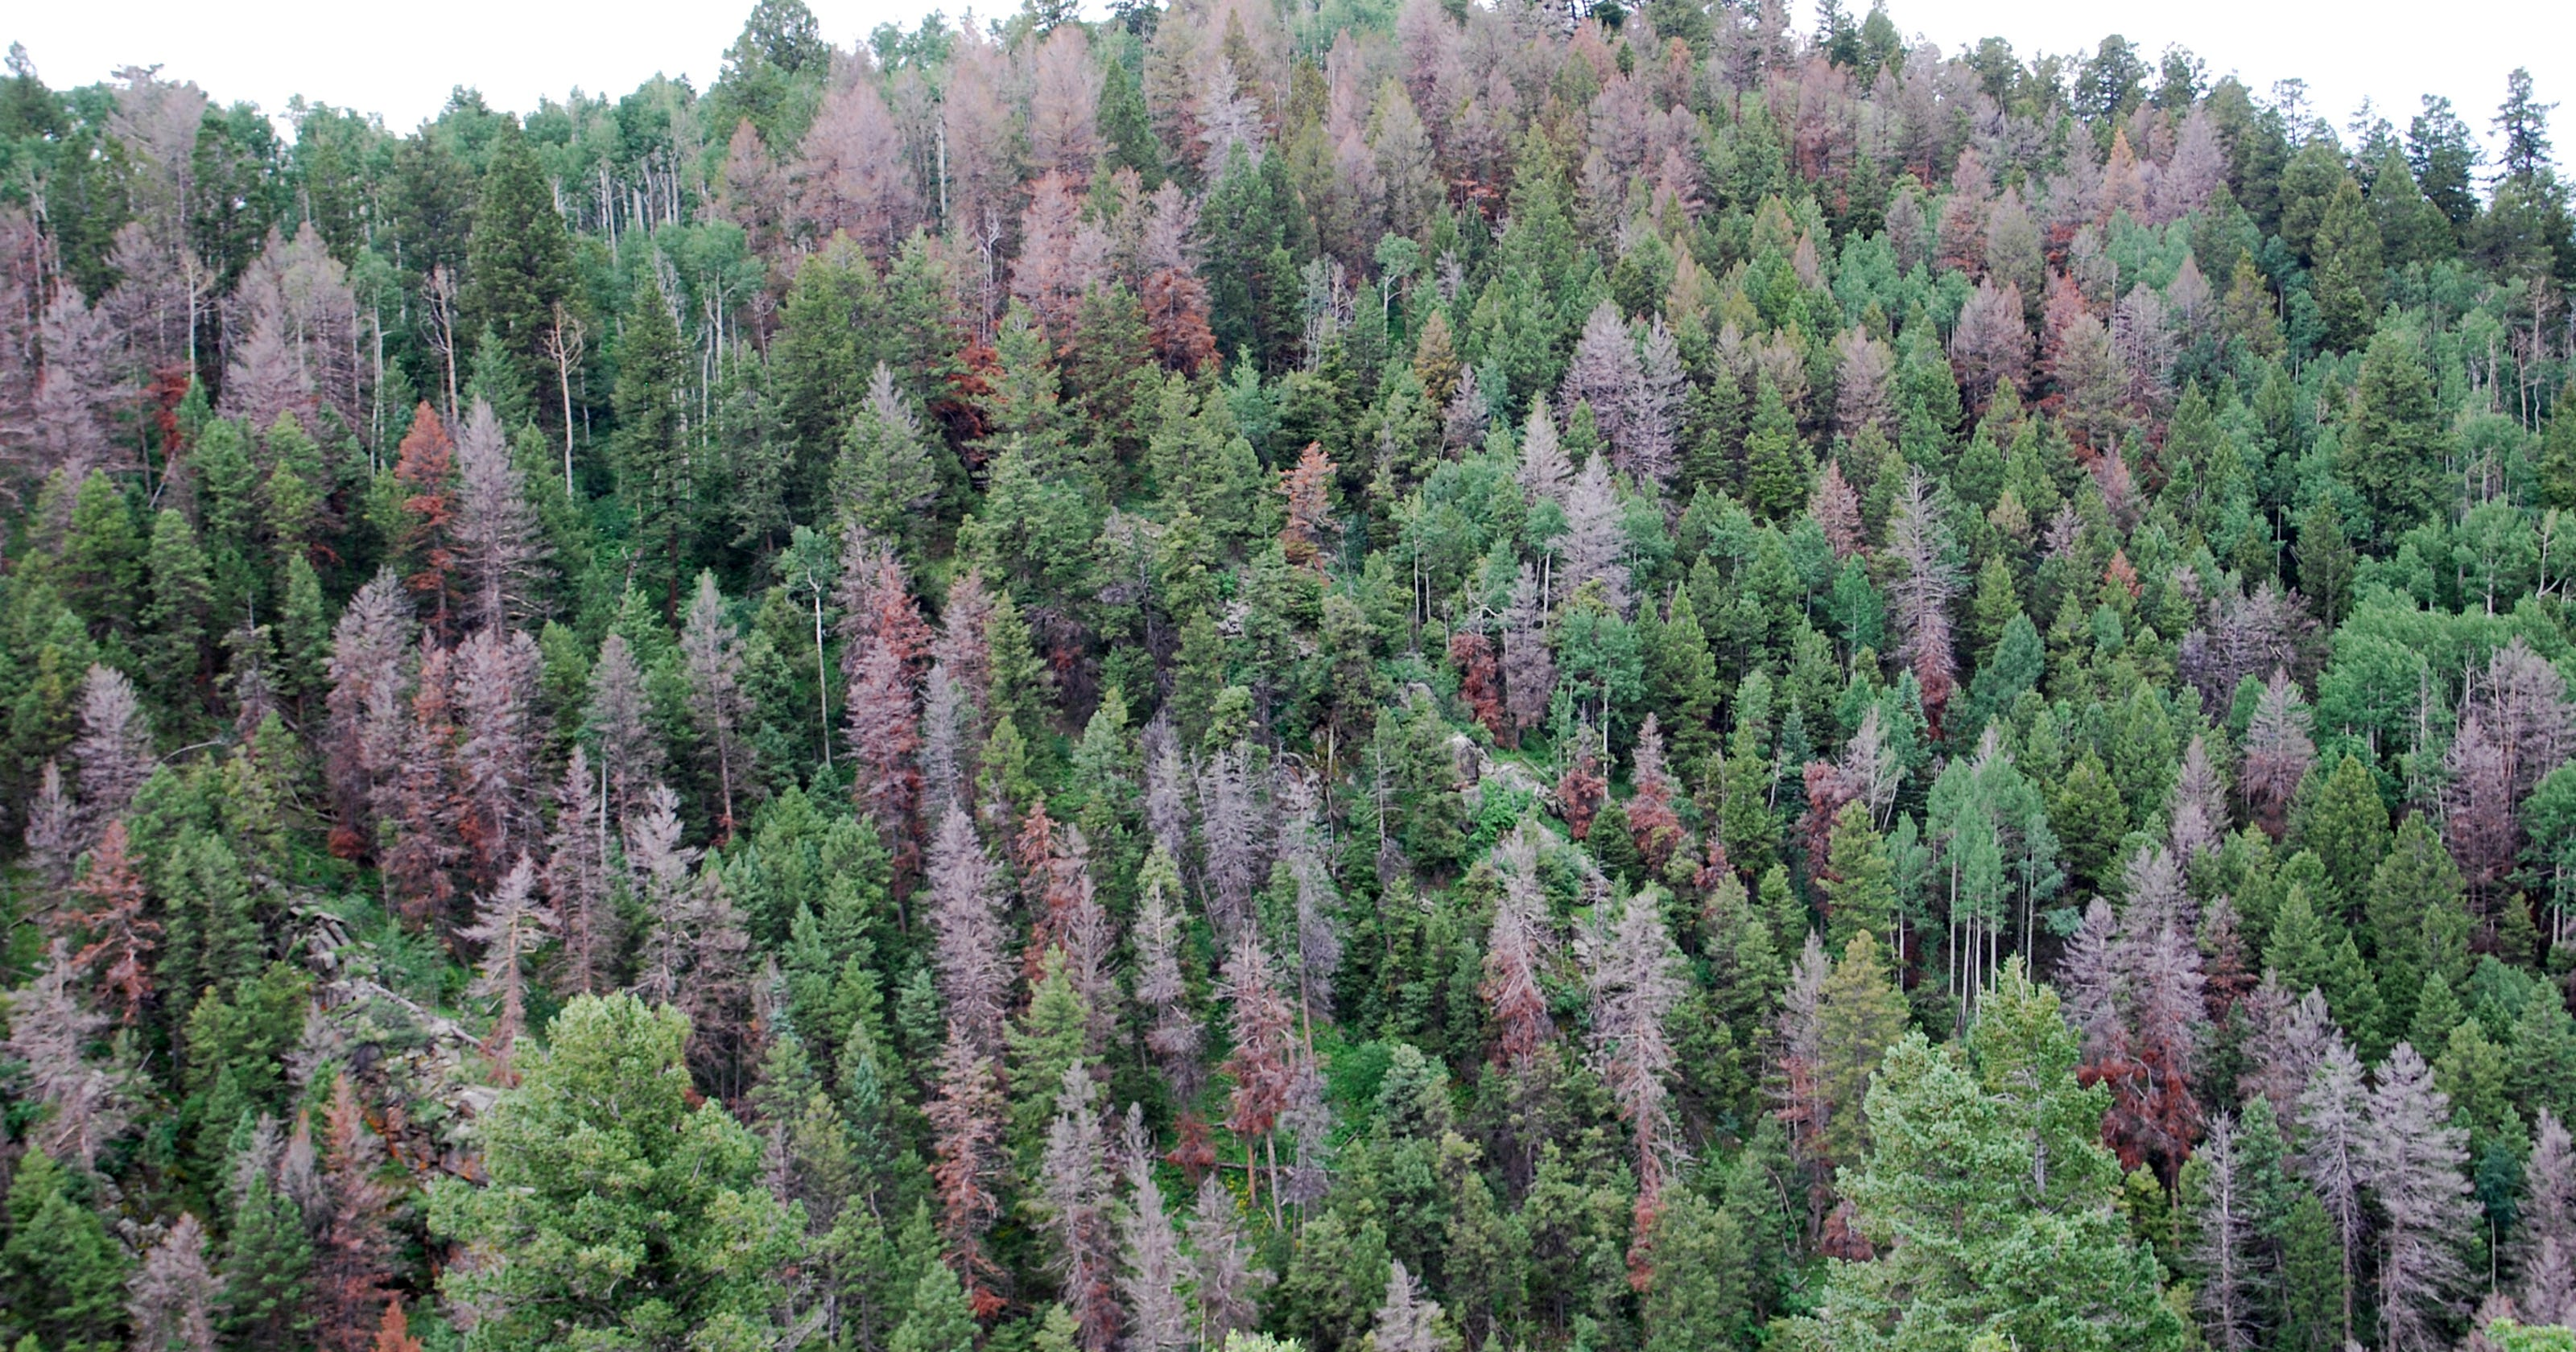 Lingering dead trees in Colorado forests put us in danger of